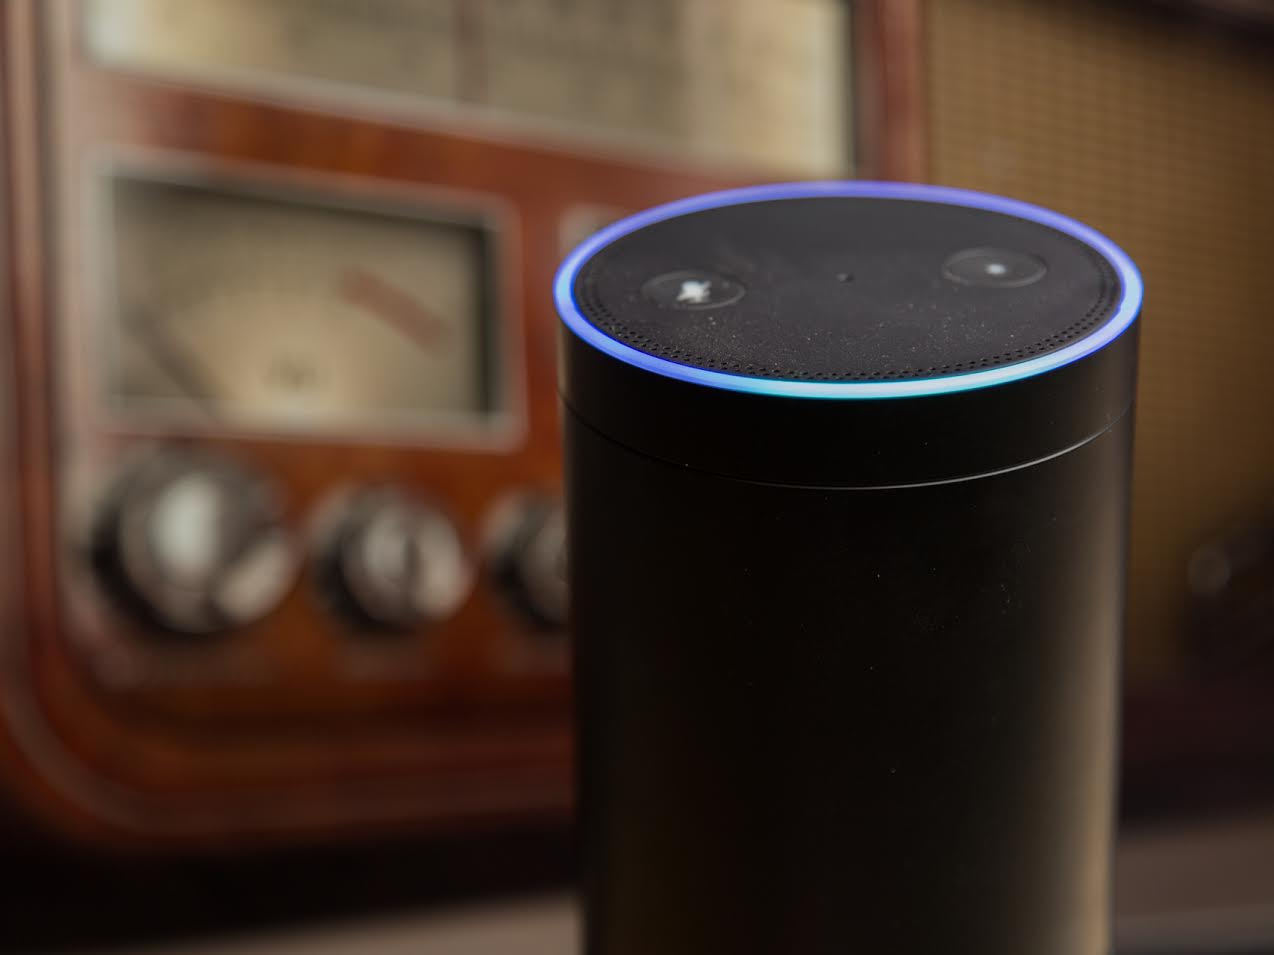 amazon-echo-radio.jpg